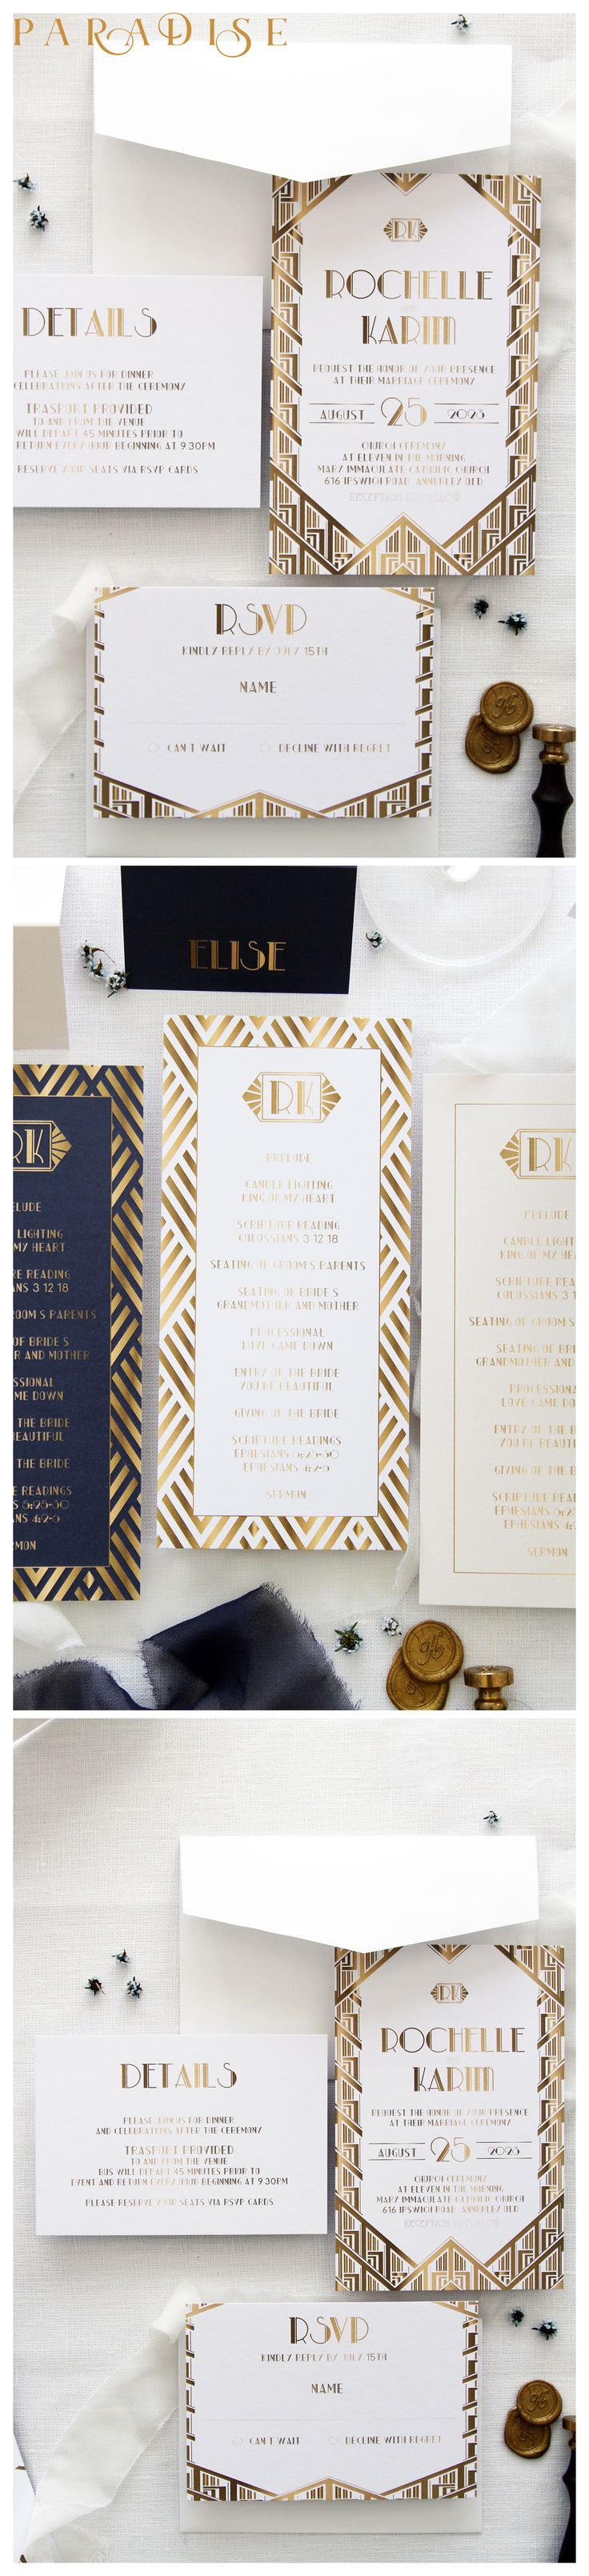 Art Deco 2 Wedding Invitations, Navy and Gold Wedding Invitation Sets, Elegant Invitations, Chic Art Deco Wedding Invitation Kit, Wax Stamp #weddinginvitation #weddings #bride #weddingstationery #weddinginvitations #weddingtrends #weddinginspo #weddingstyle